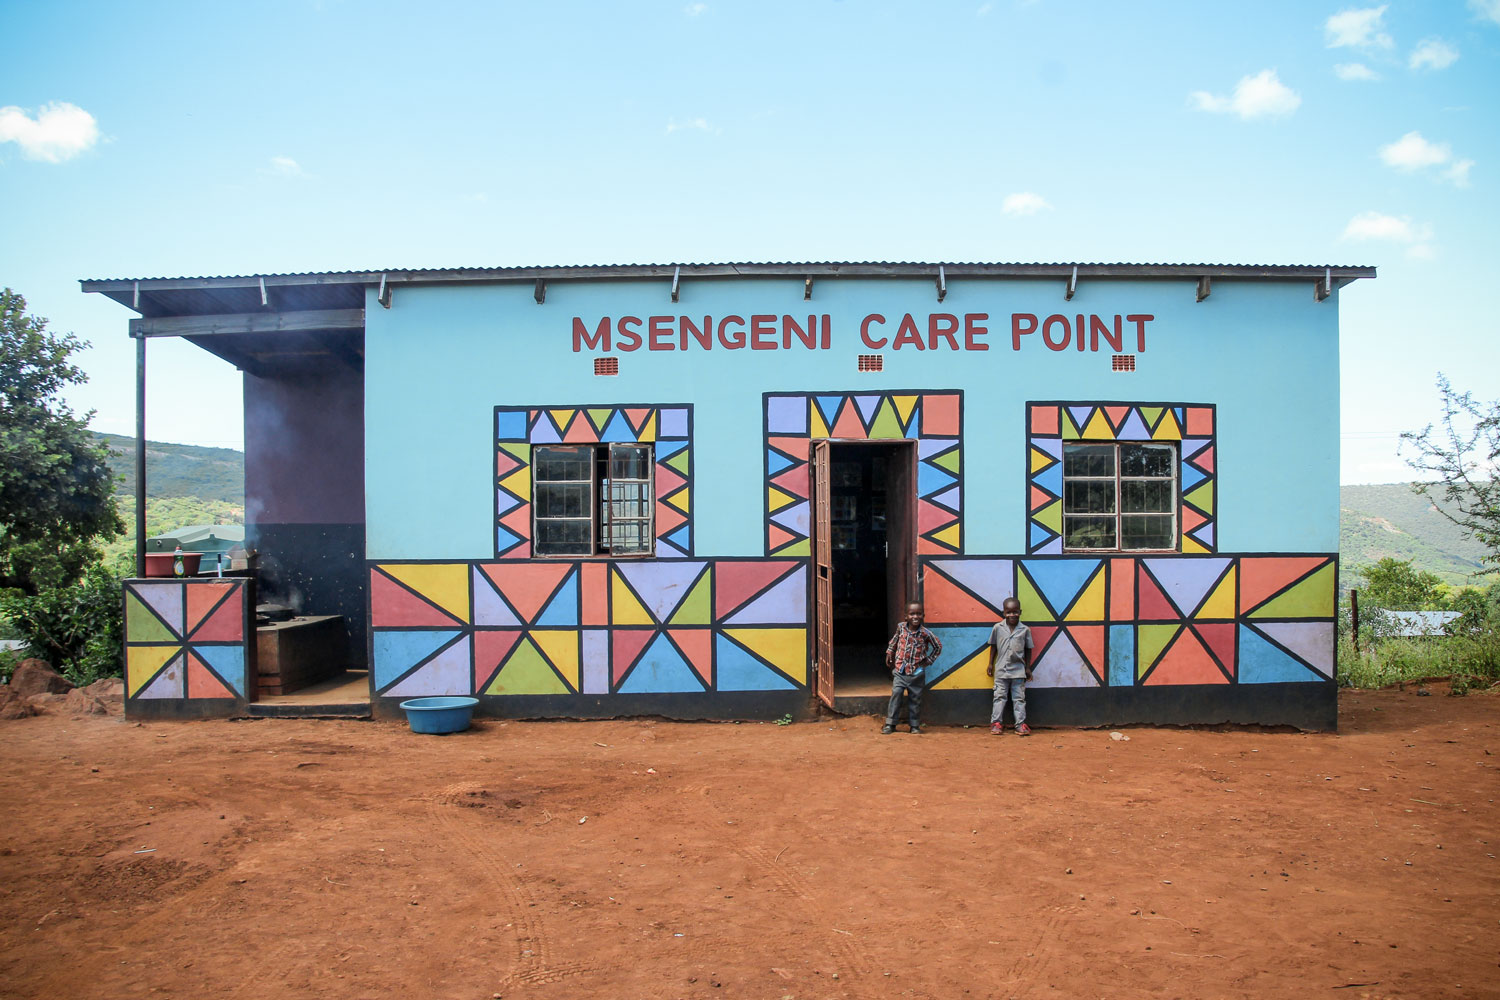 100 of the most vulnerable children in Msengeni Community receive a daily hot and nutritious meal, access to education and access to basic health care.